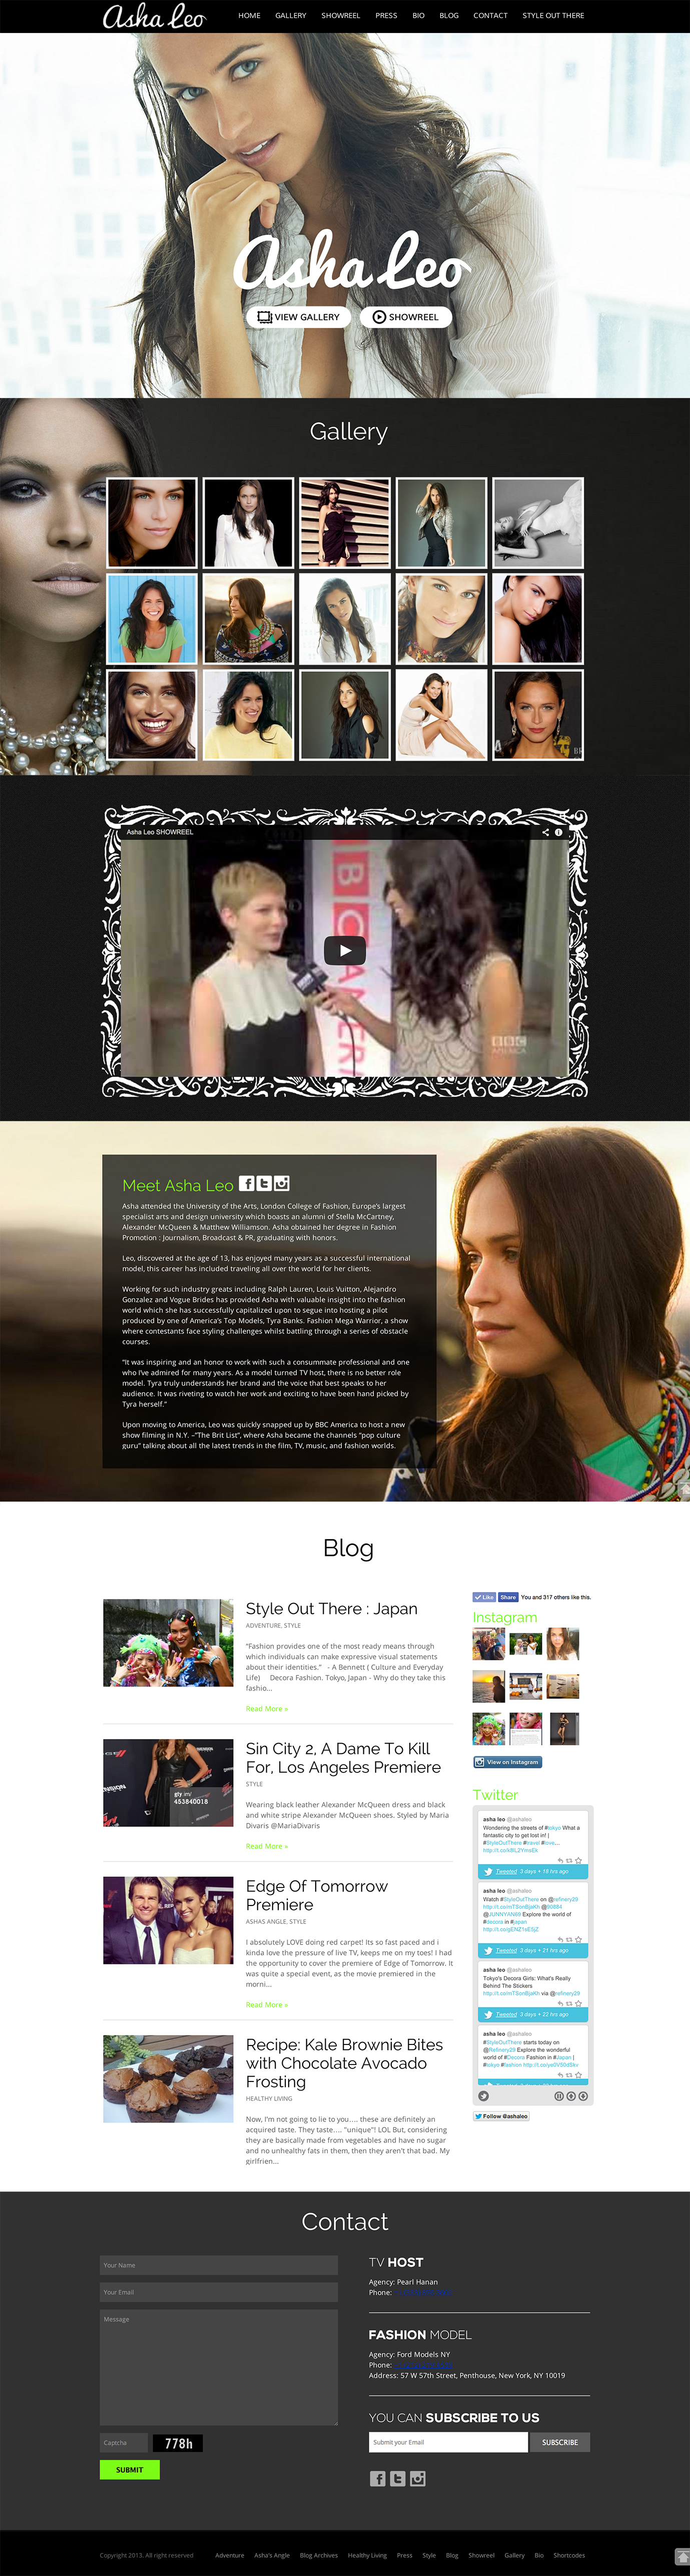 WordPress Website for Model and TV Host